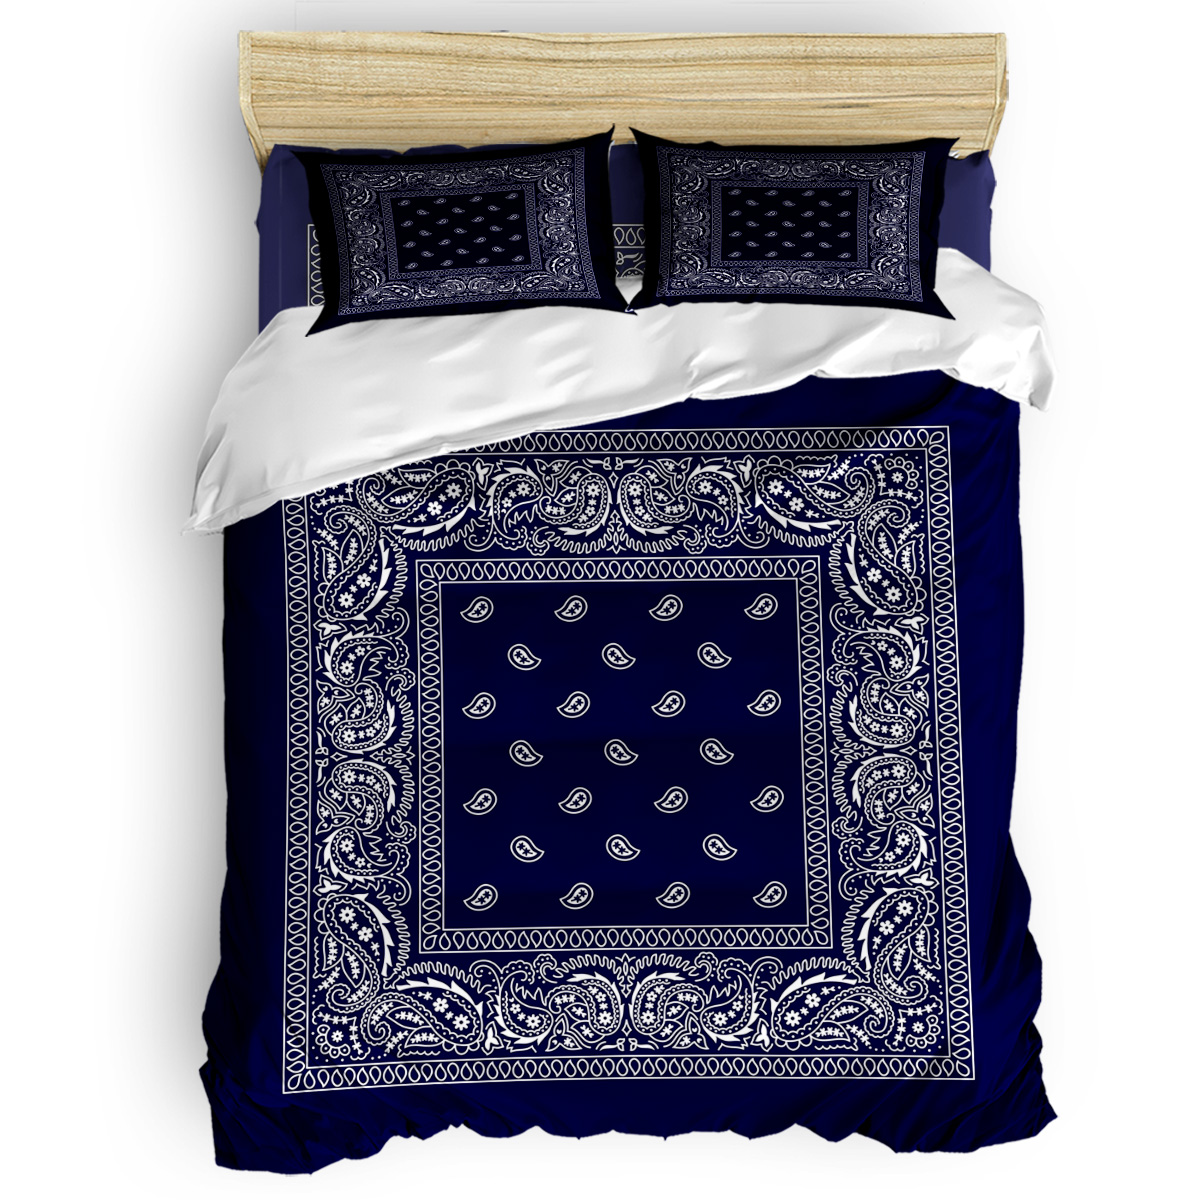 Bandana Navy Blue Southwestern Duvet Cover Cotton King Size Queen Size Quilt Cover Set Bedclothes Comforter Single Bedding Sets